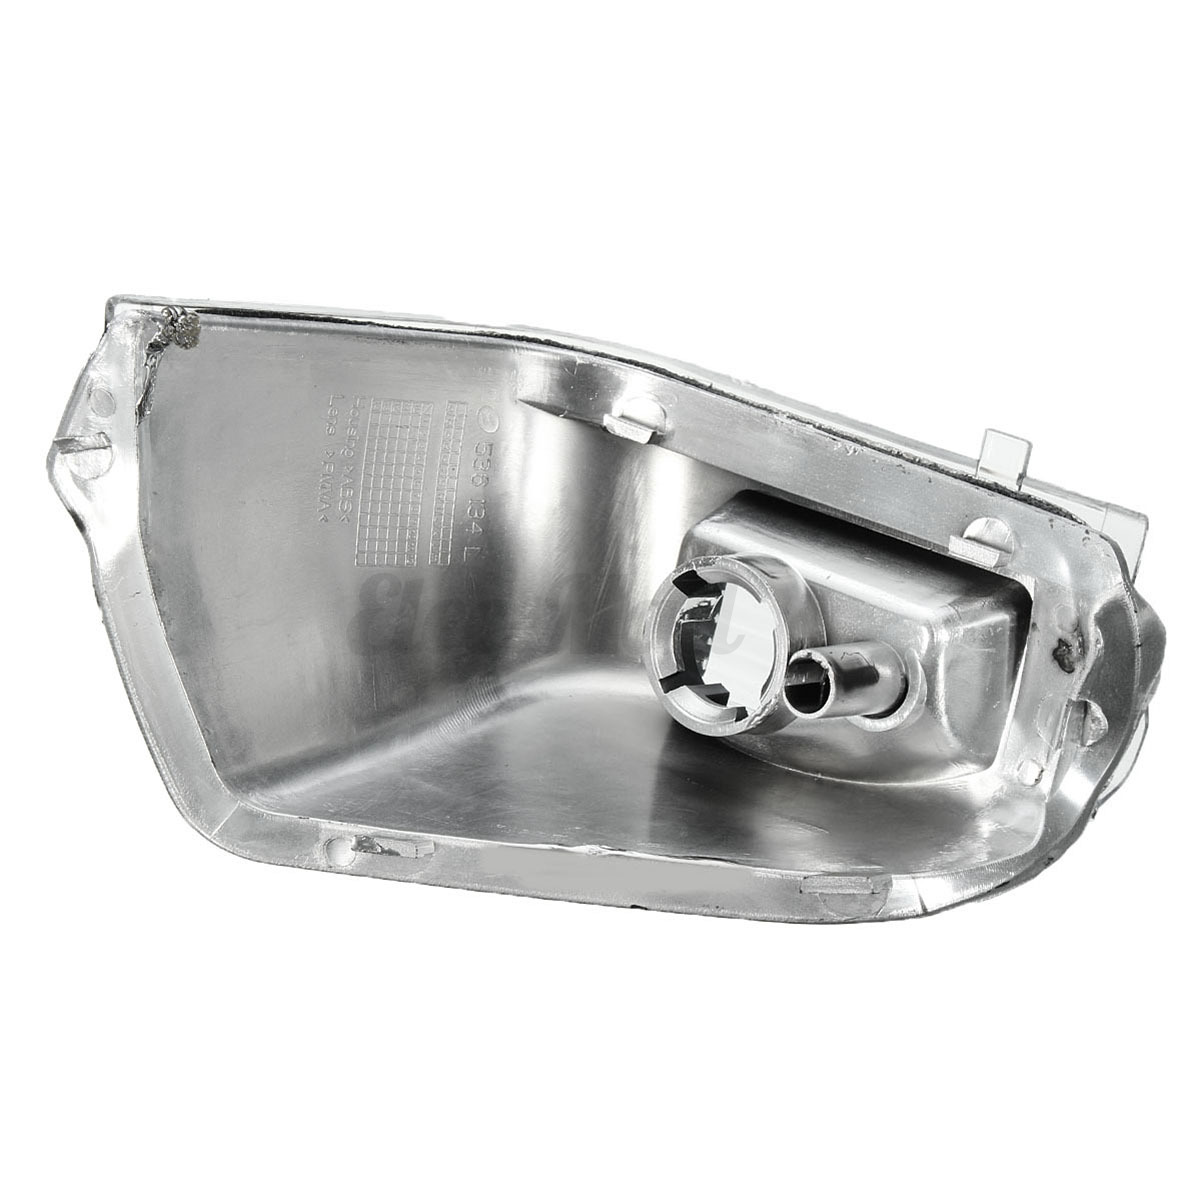 Mercedes benz side mirror turn signal light for Mercedes benz side mirror turn signal